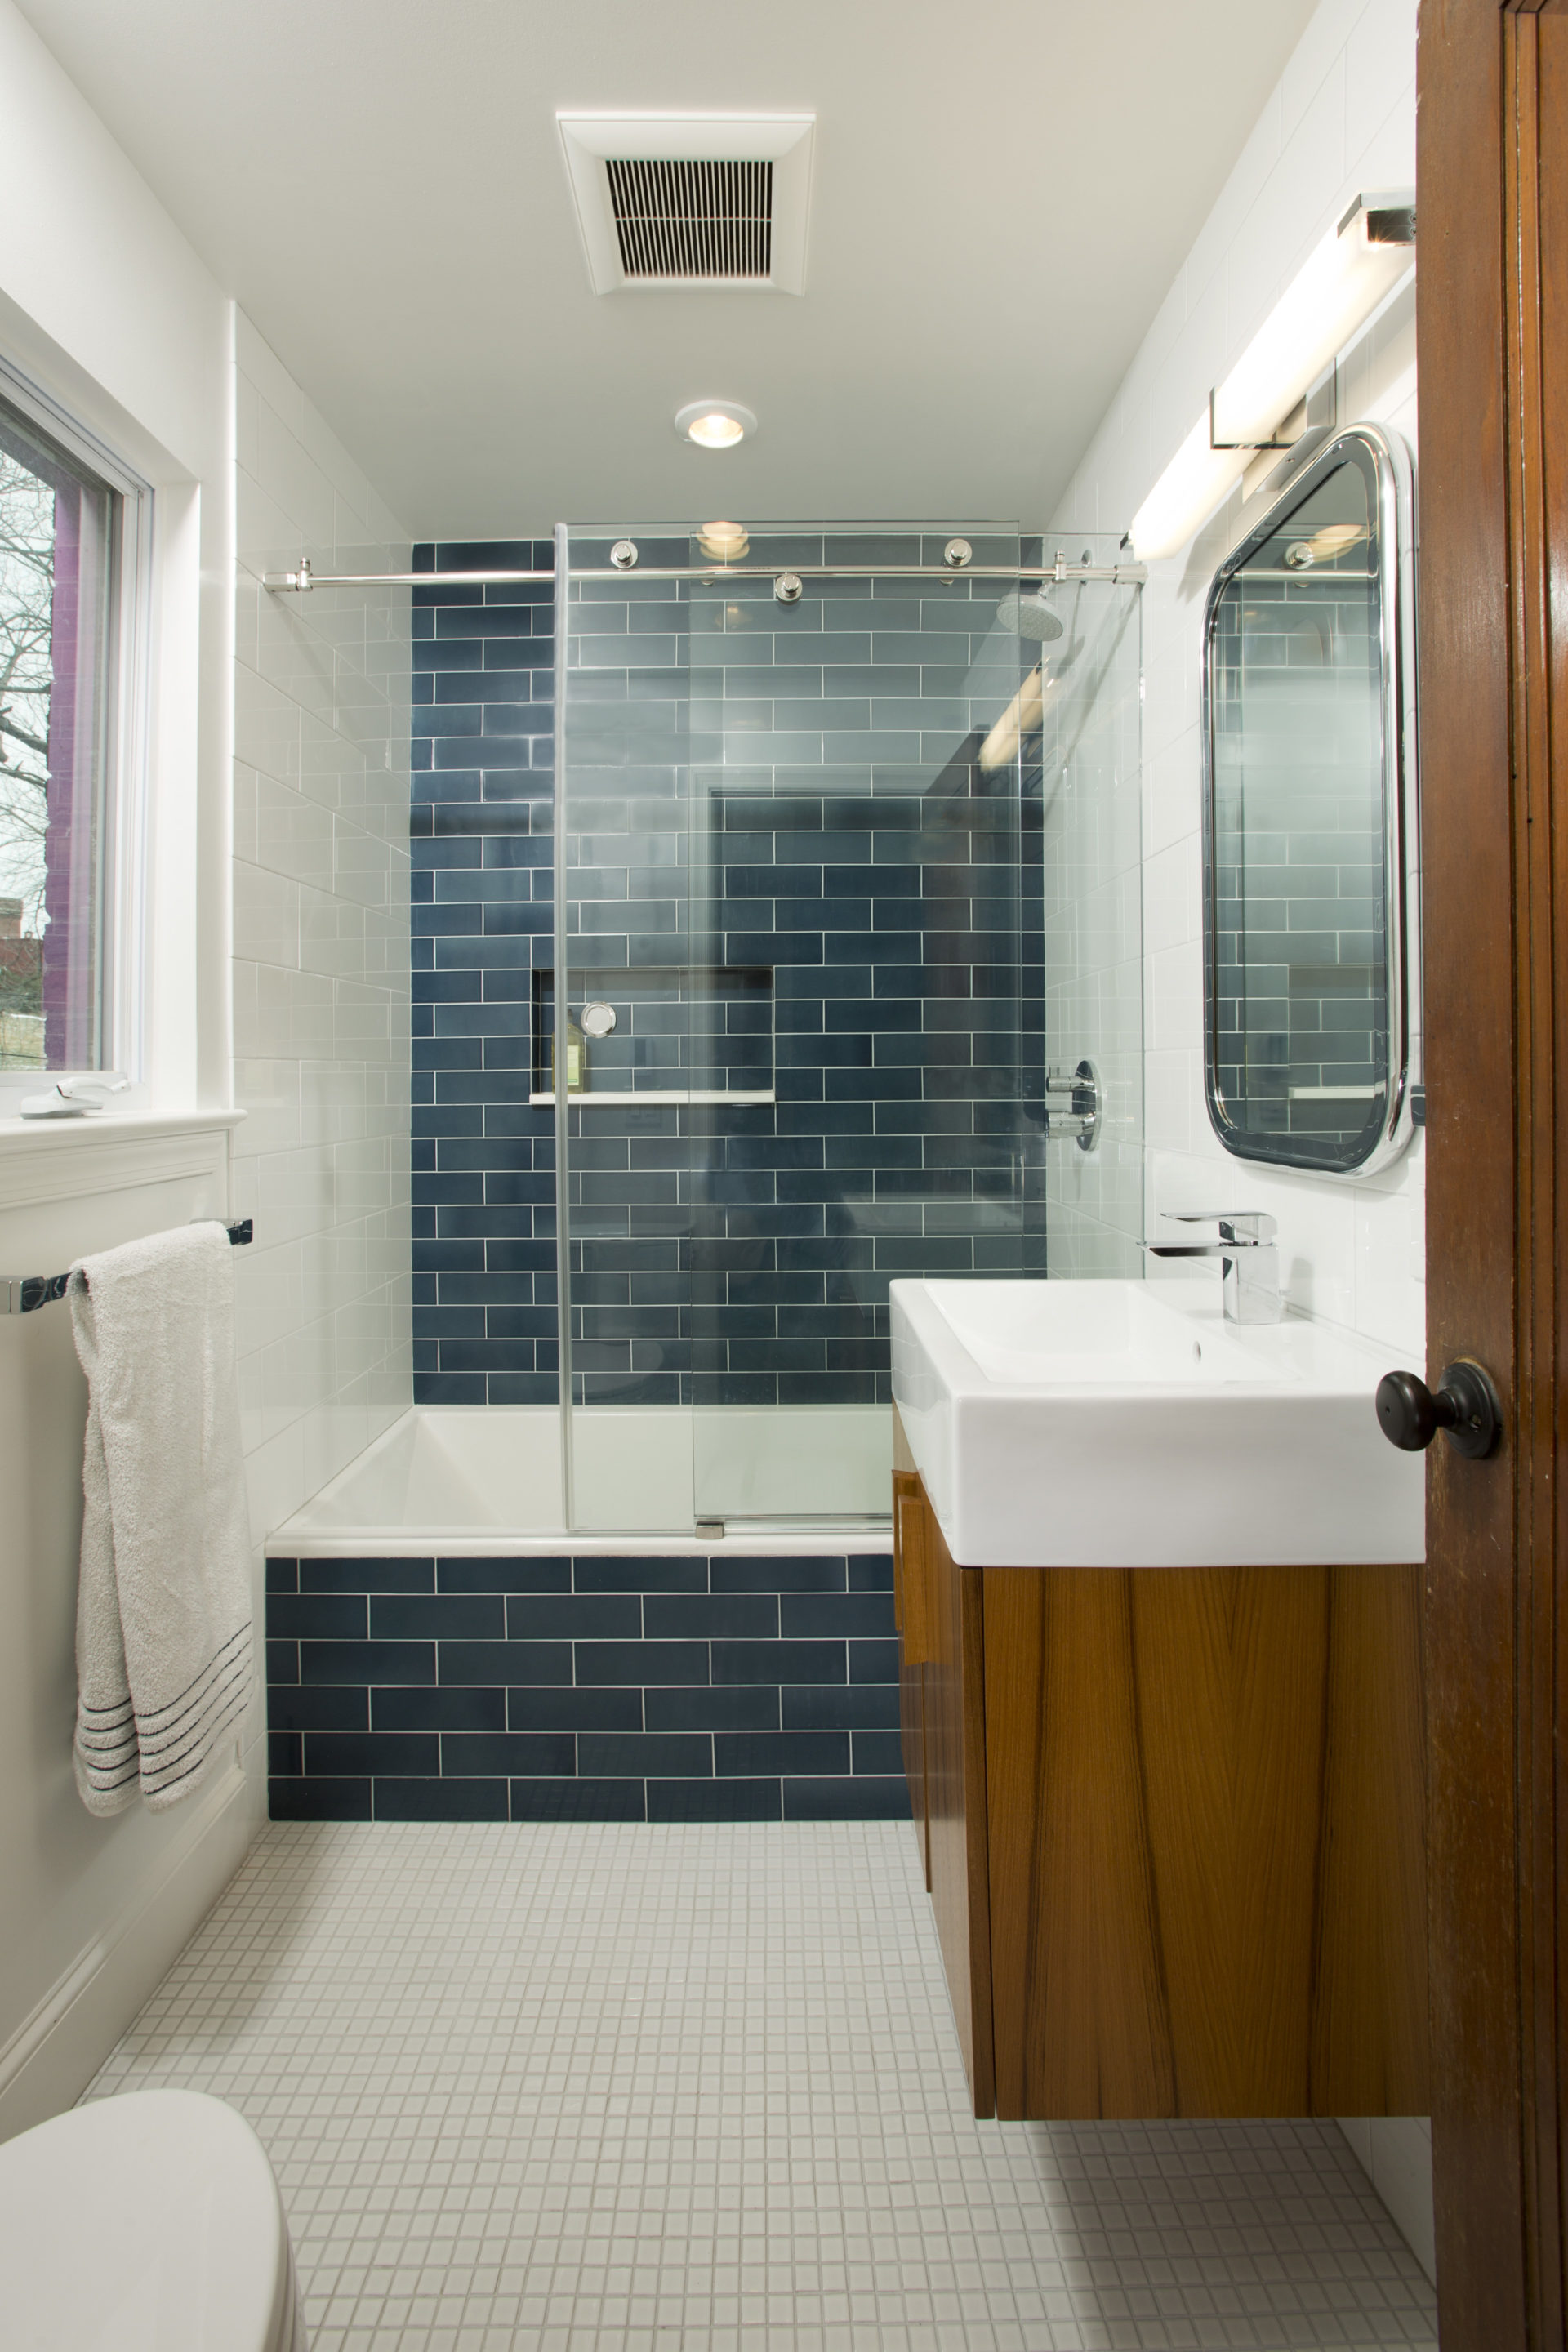 Chevy Chase Bathroom Renovation  Four Brothers LLC